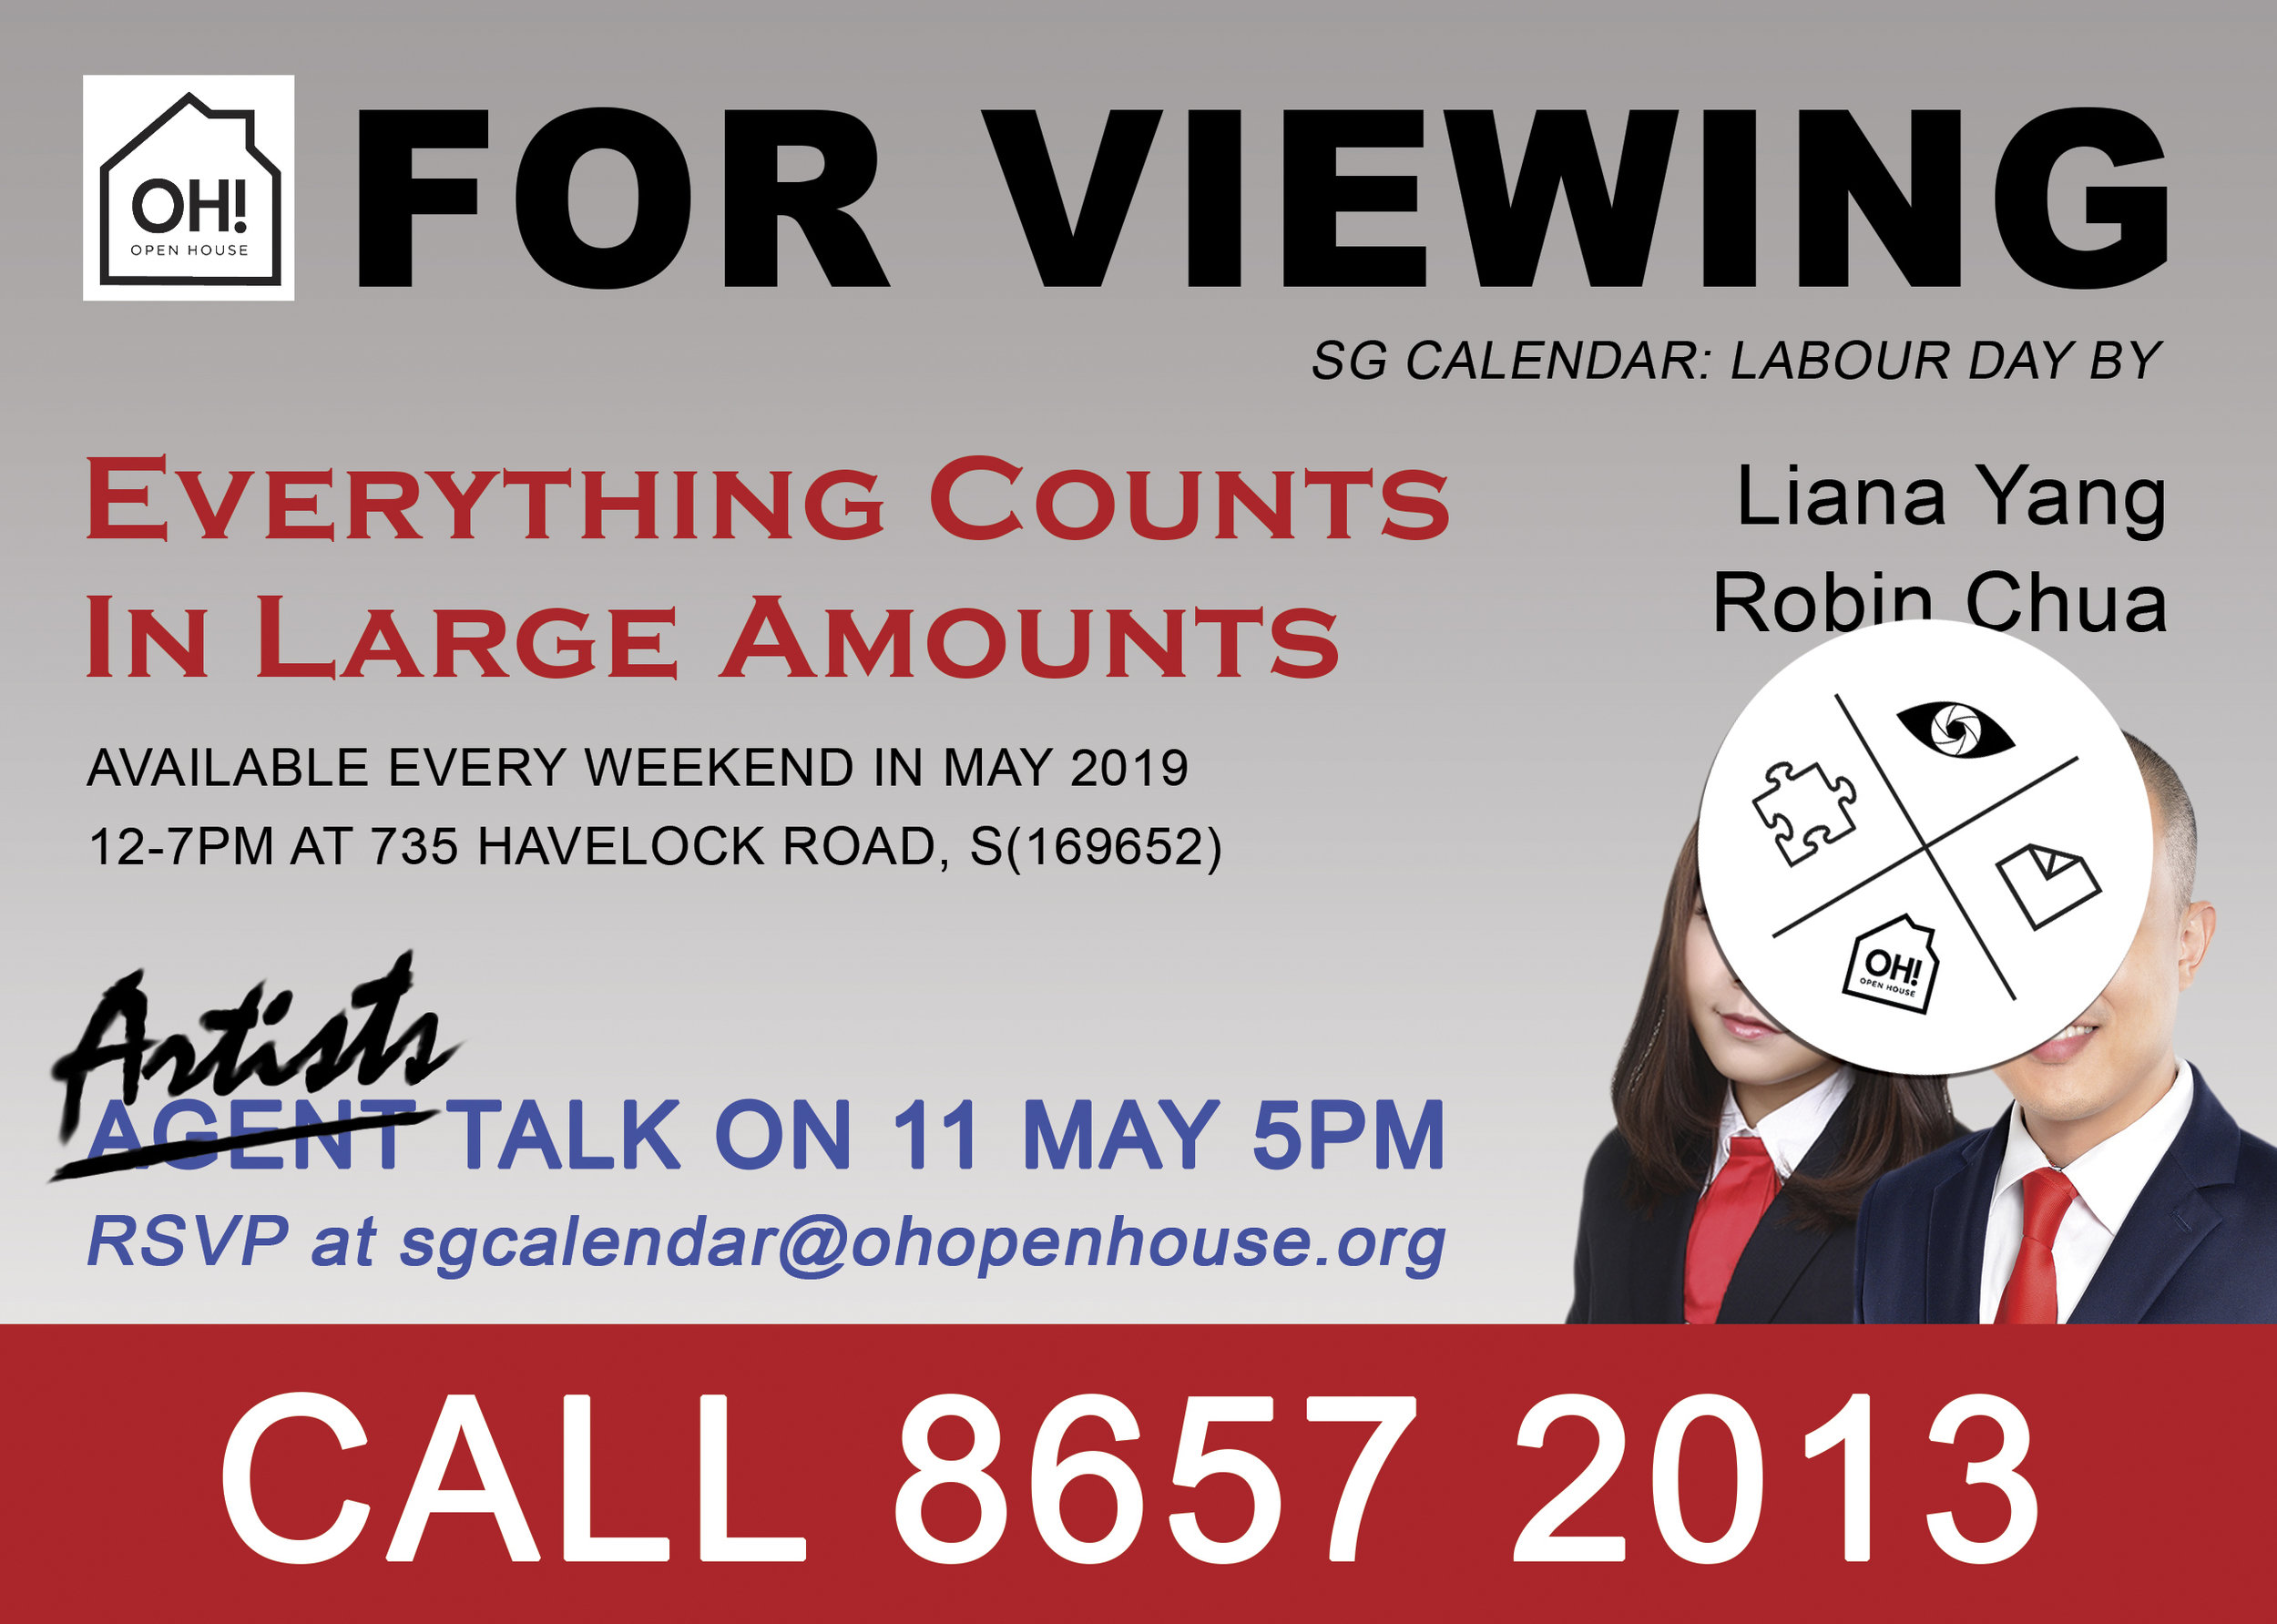 Invitation to 'Everything Counts in Large Amounts'. Image courtesy of Liana Yang and Robin Chua.